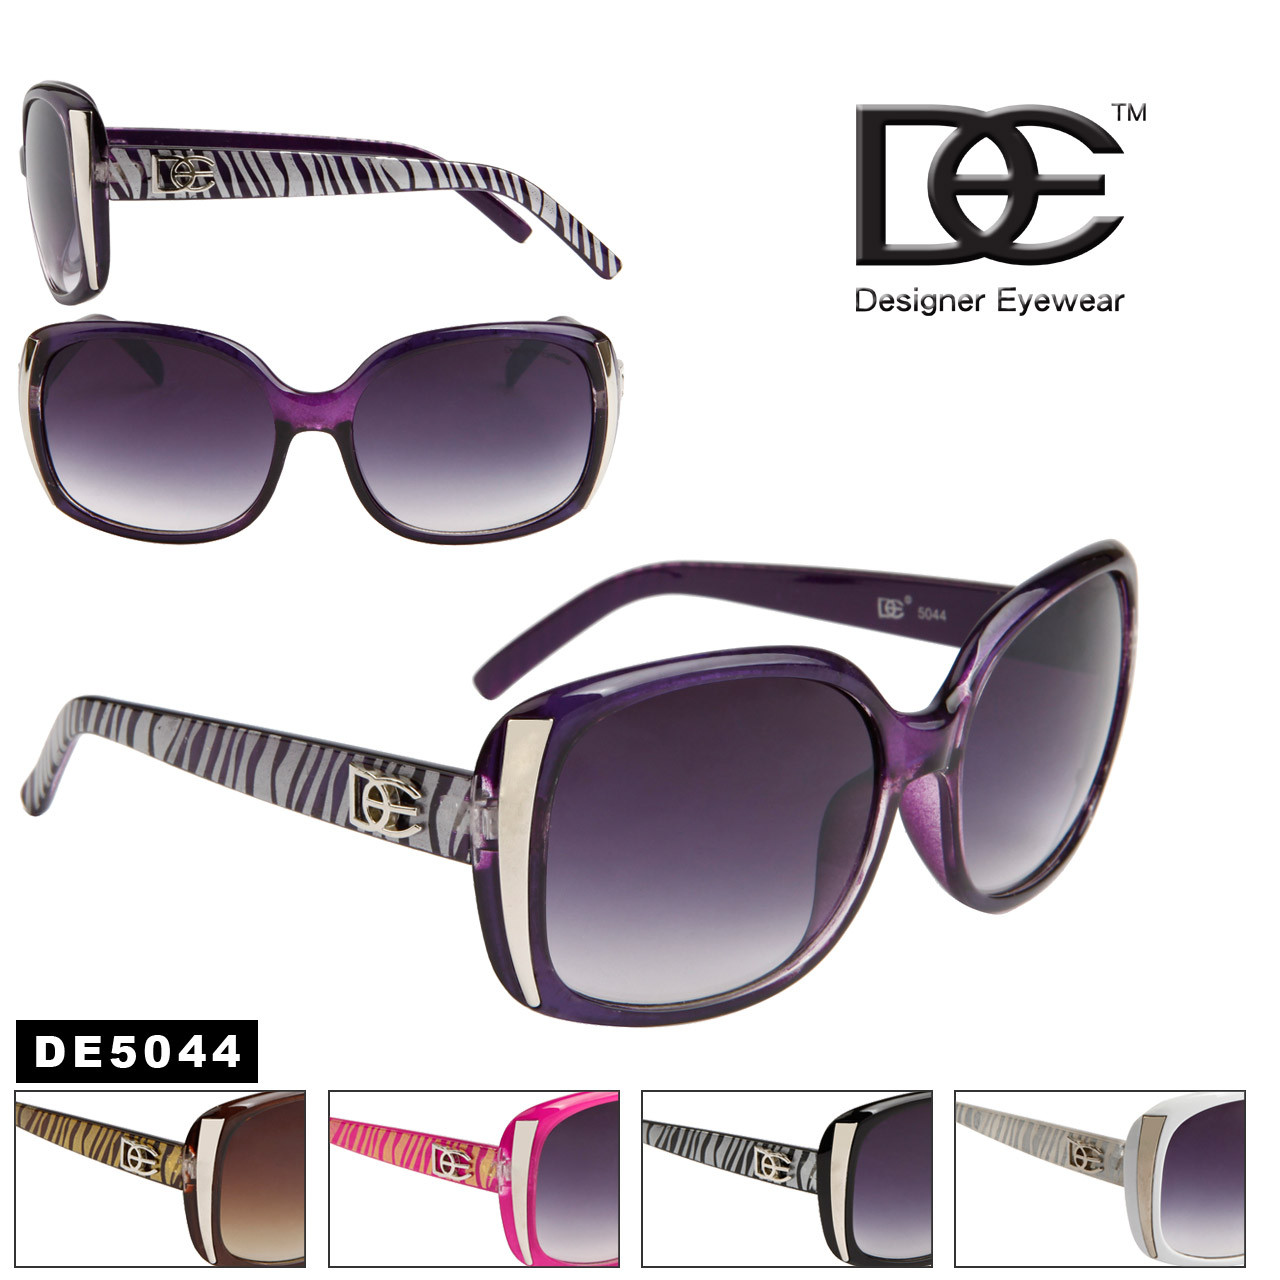 Women's Designer Sunglasses by the Dozen - DE5044